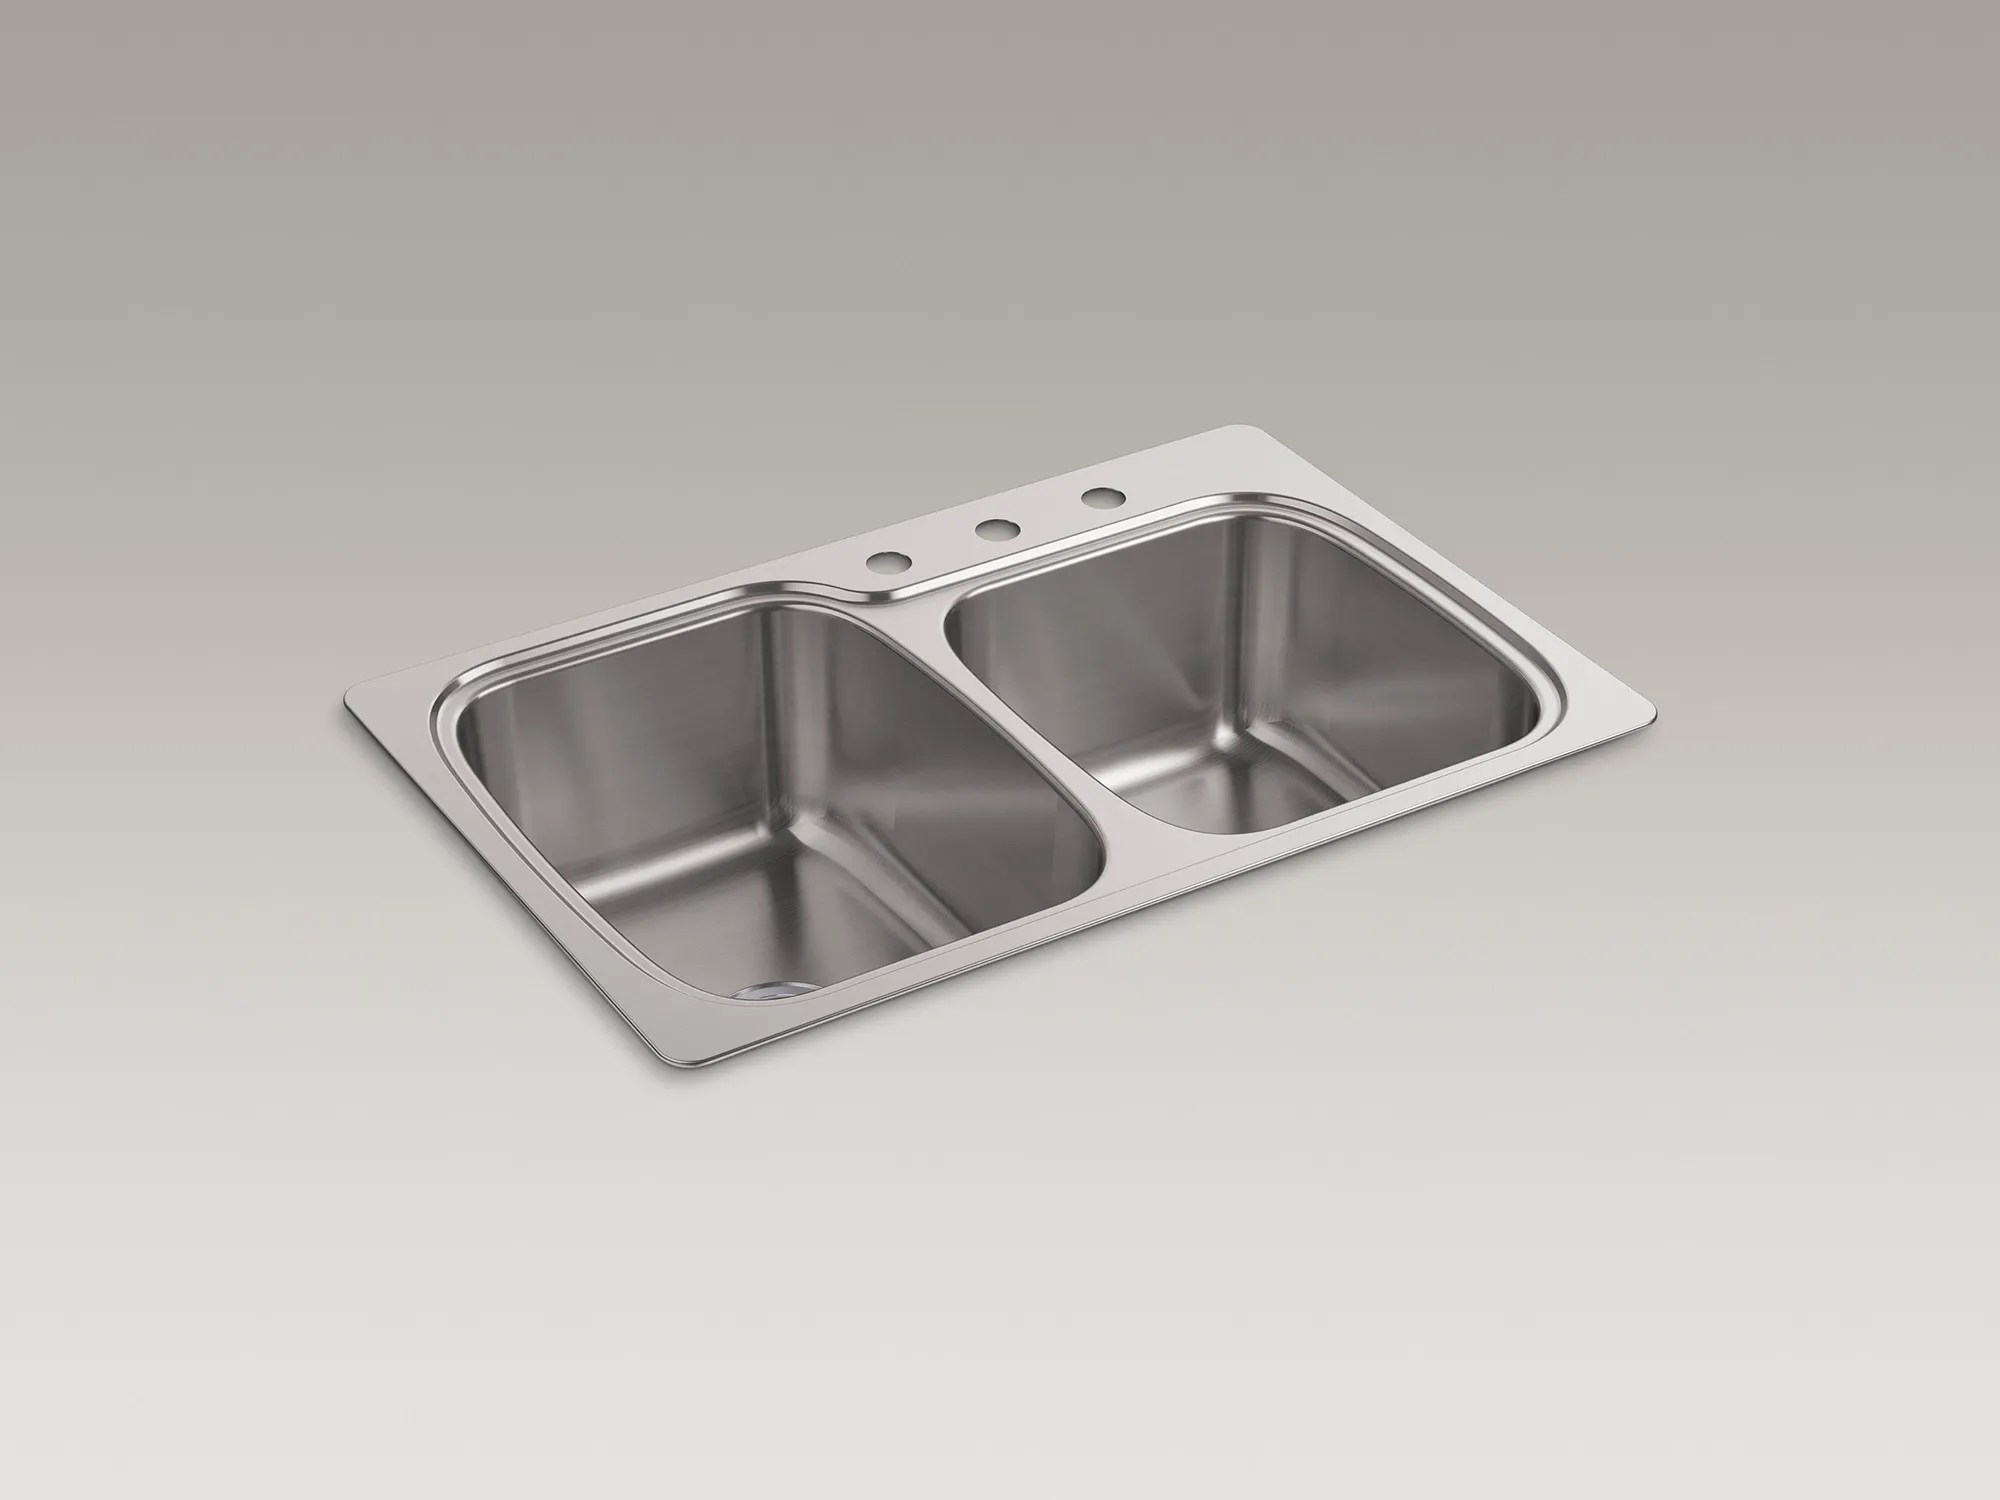 switching sinks top mount style is